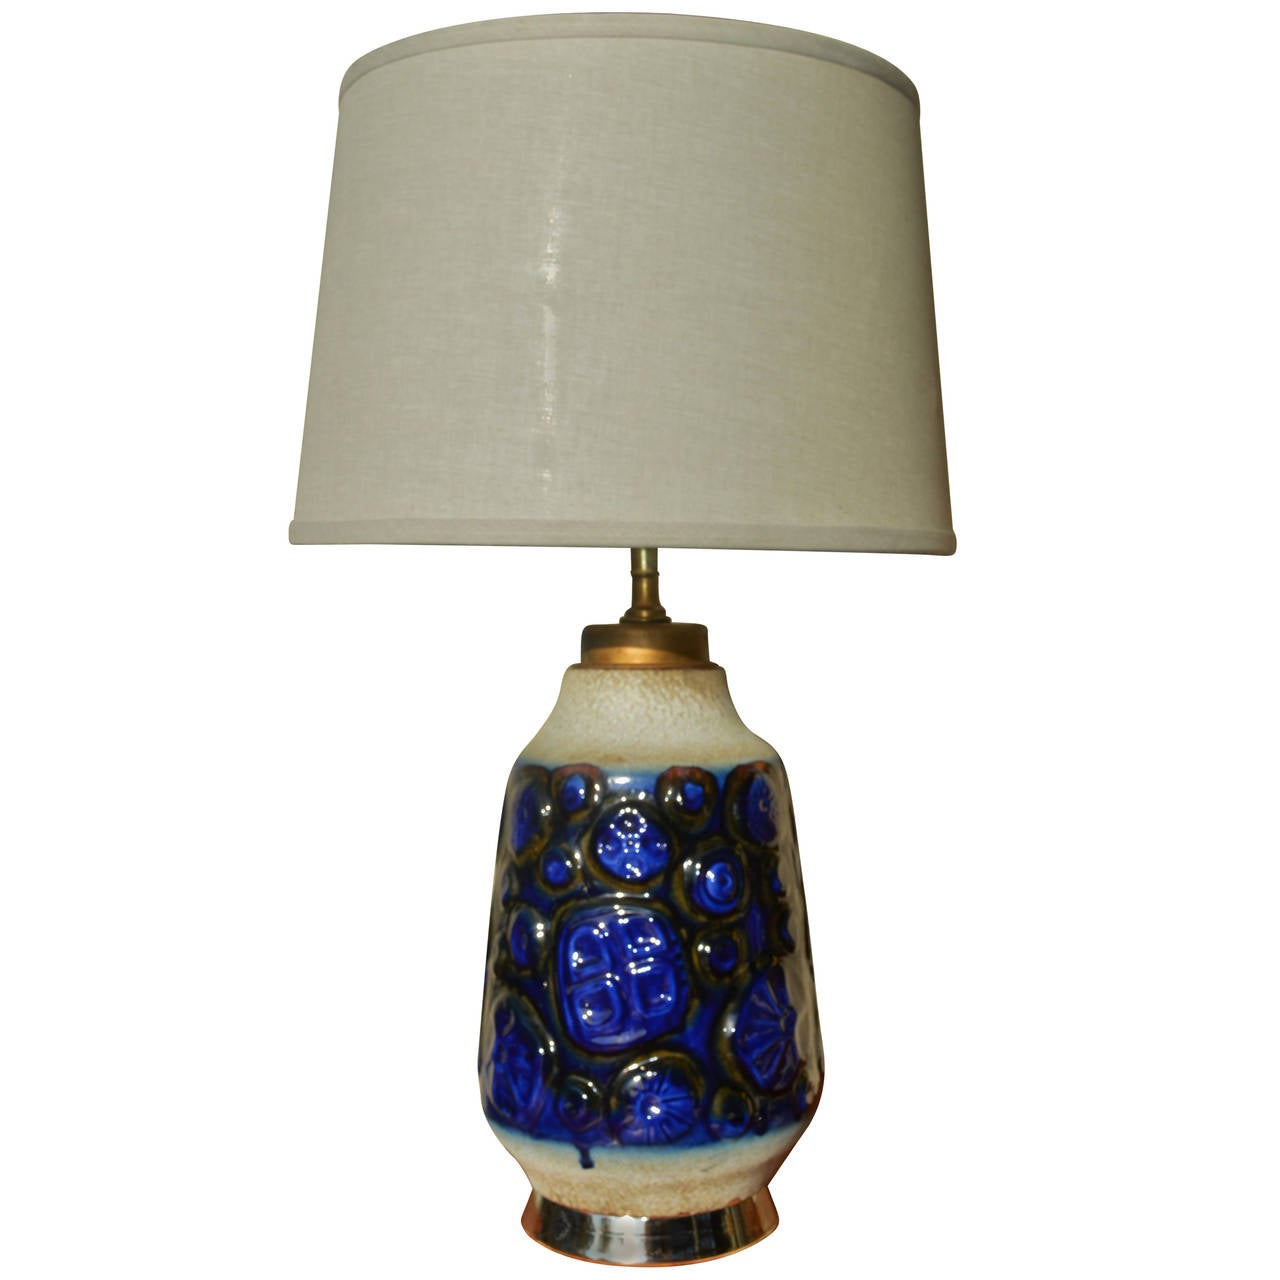 West German Carstens Textured Ceramic Lamp by Gerda Heuckeroth